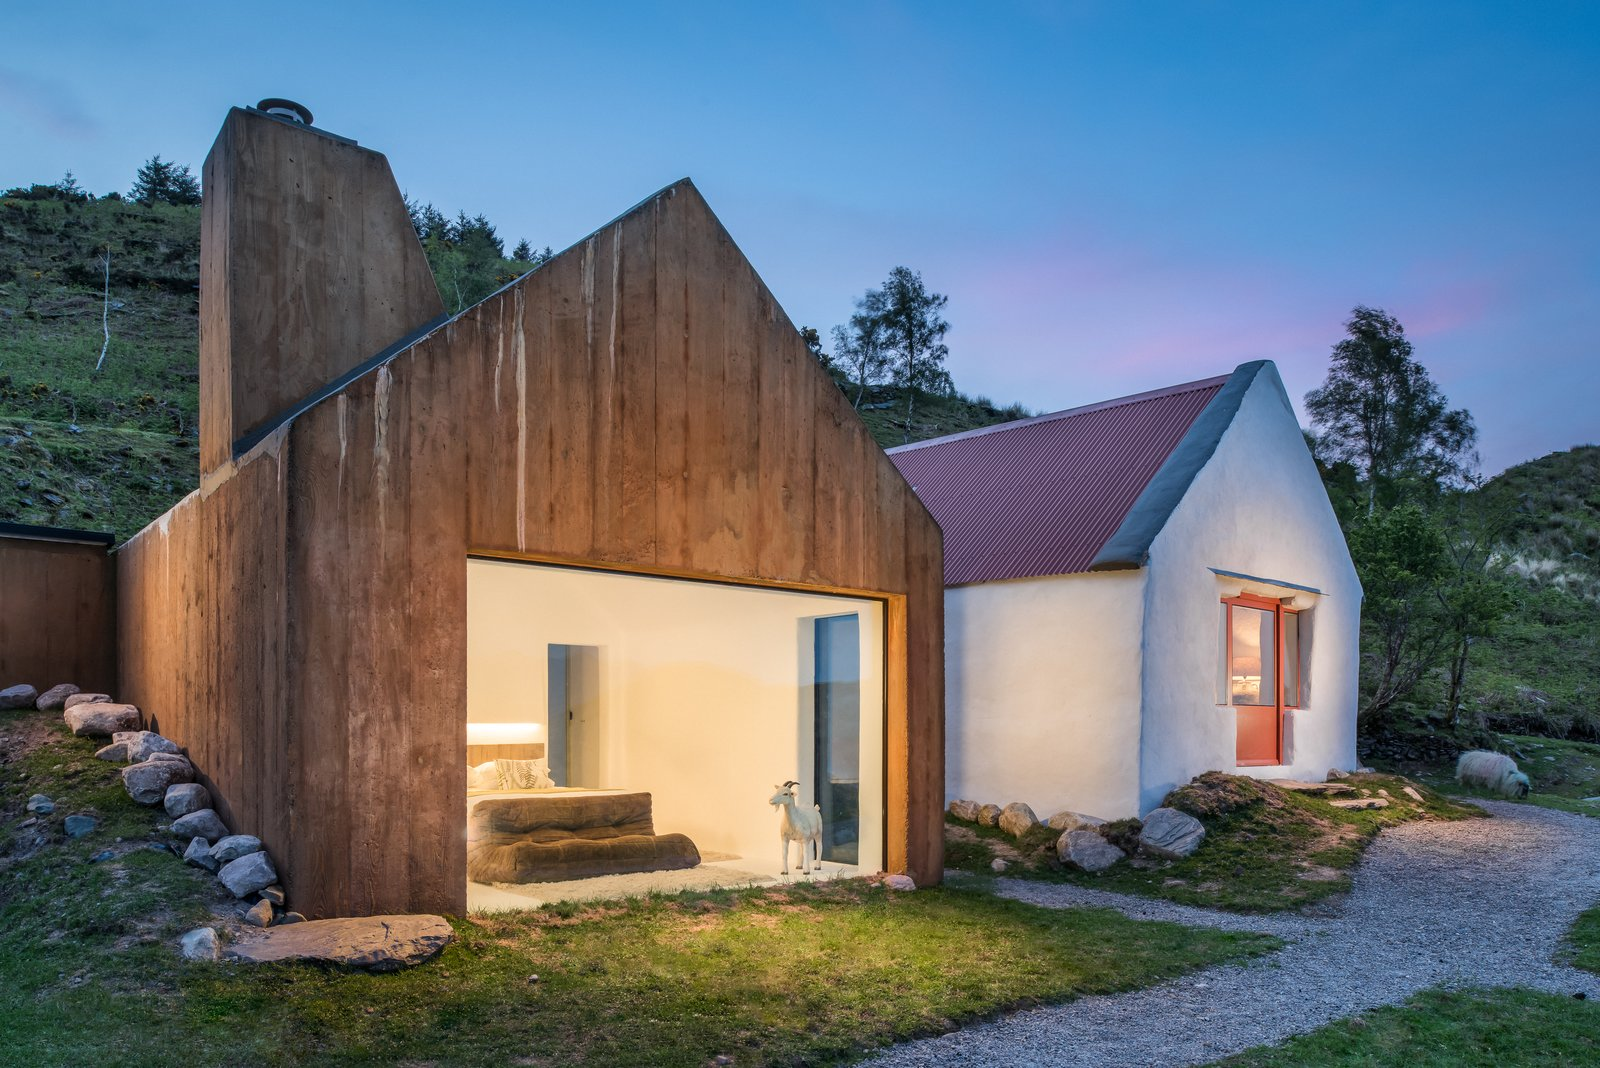 Exterior, Cabin Building Type, Wood Siding Material, Gable RoofLine, and Stucco Siding Material  Best Photos from 7 Vacation Rentals in Ireland That Put a Spin on the Classic Cottage